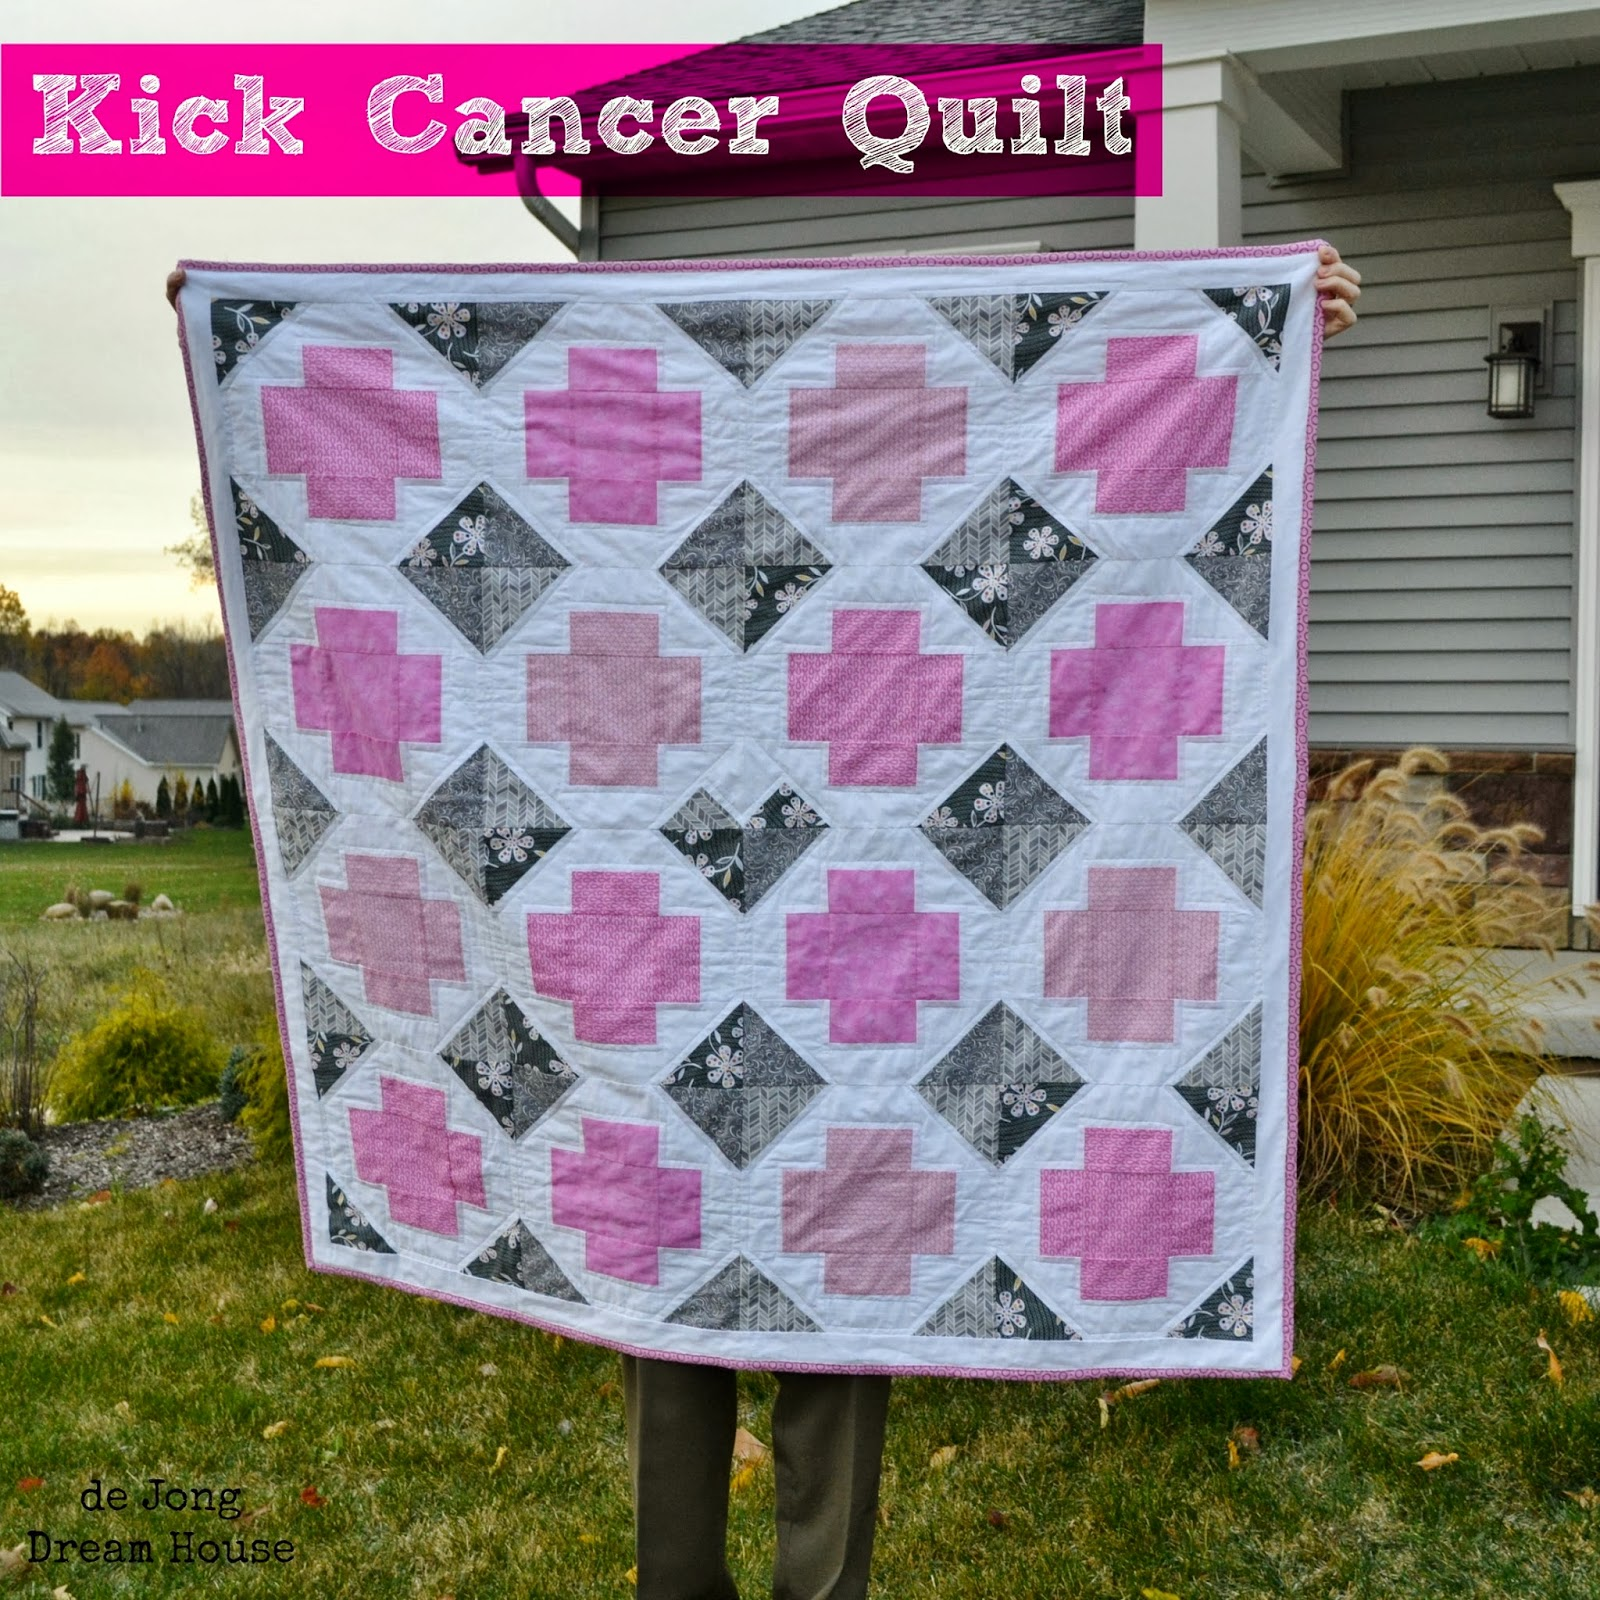 Michele's Kick Cancer Quilt